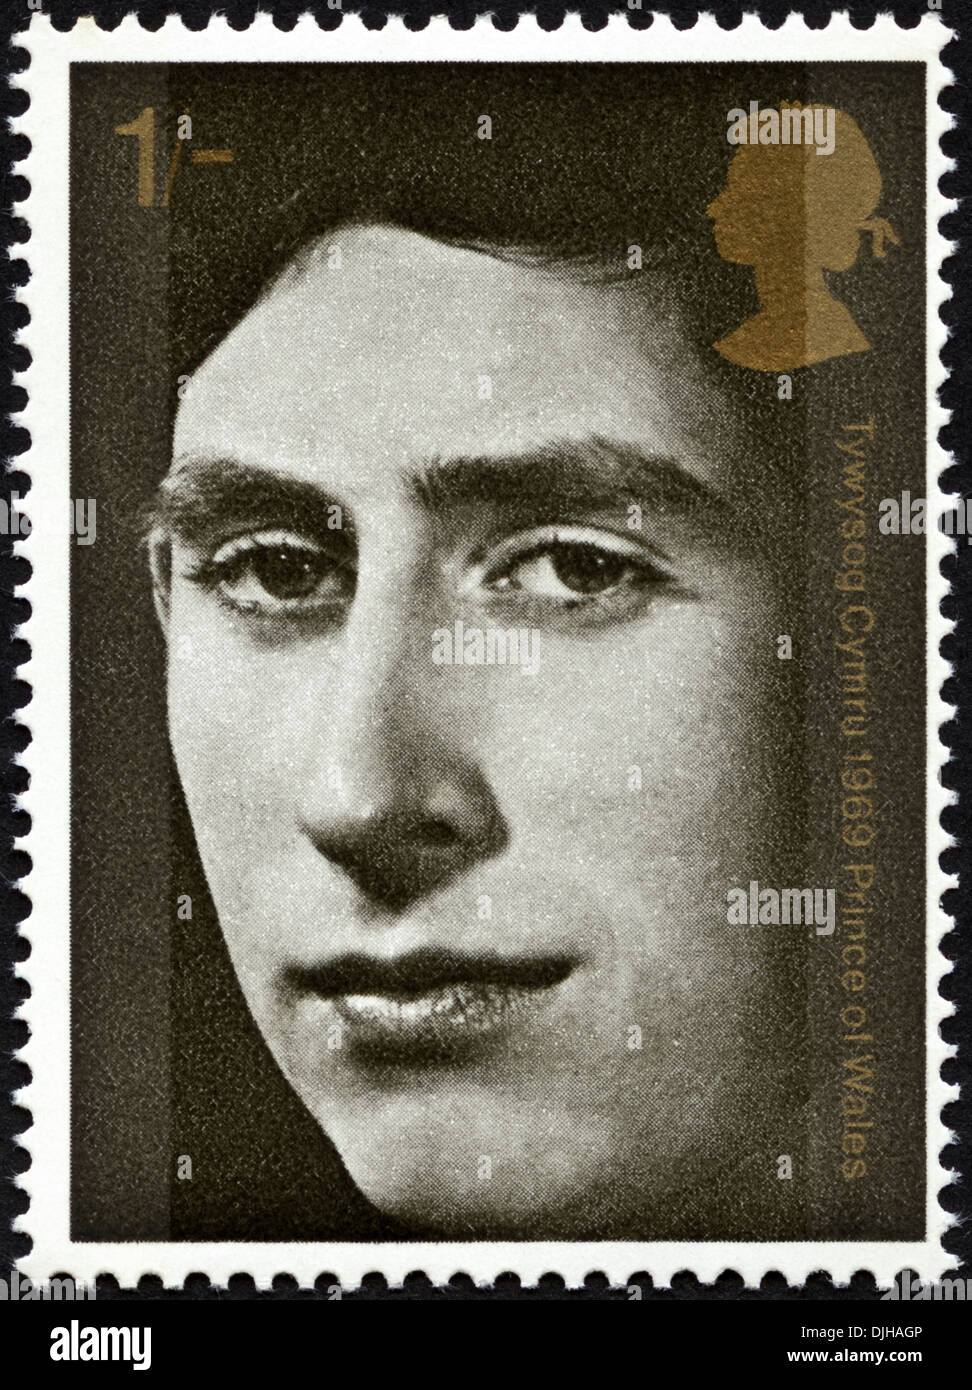 postage stamp United Kingdom 1s featuring Investiture of Prince of Wales dated 1969 bilingual Welsh English language - Stock Image